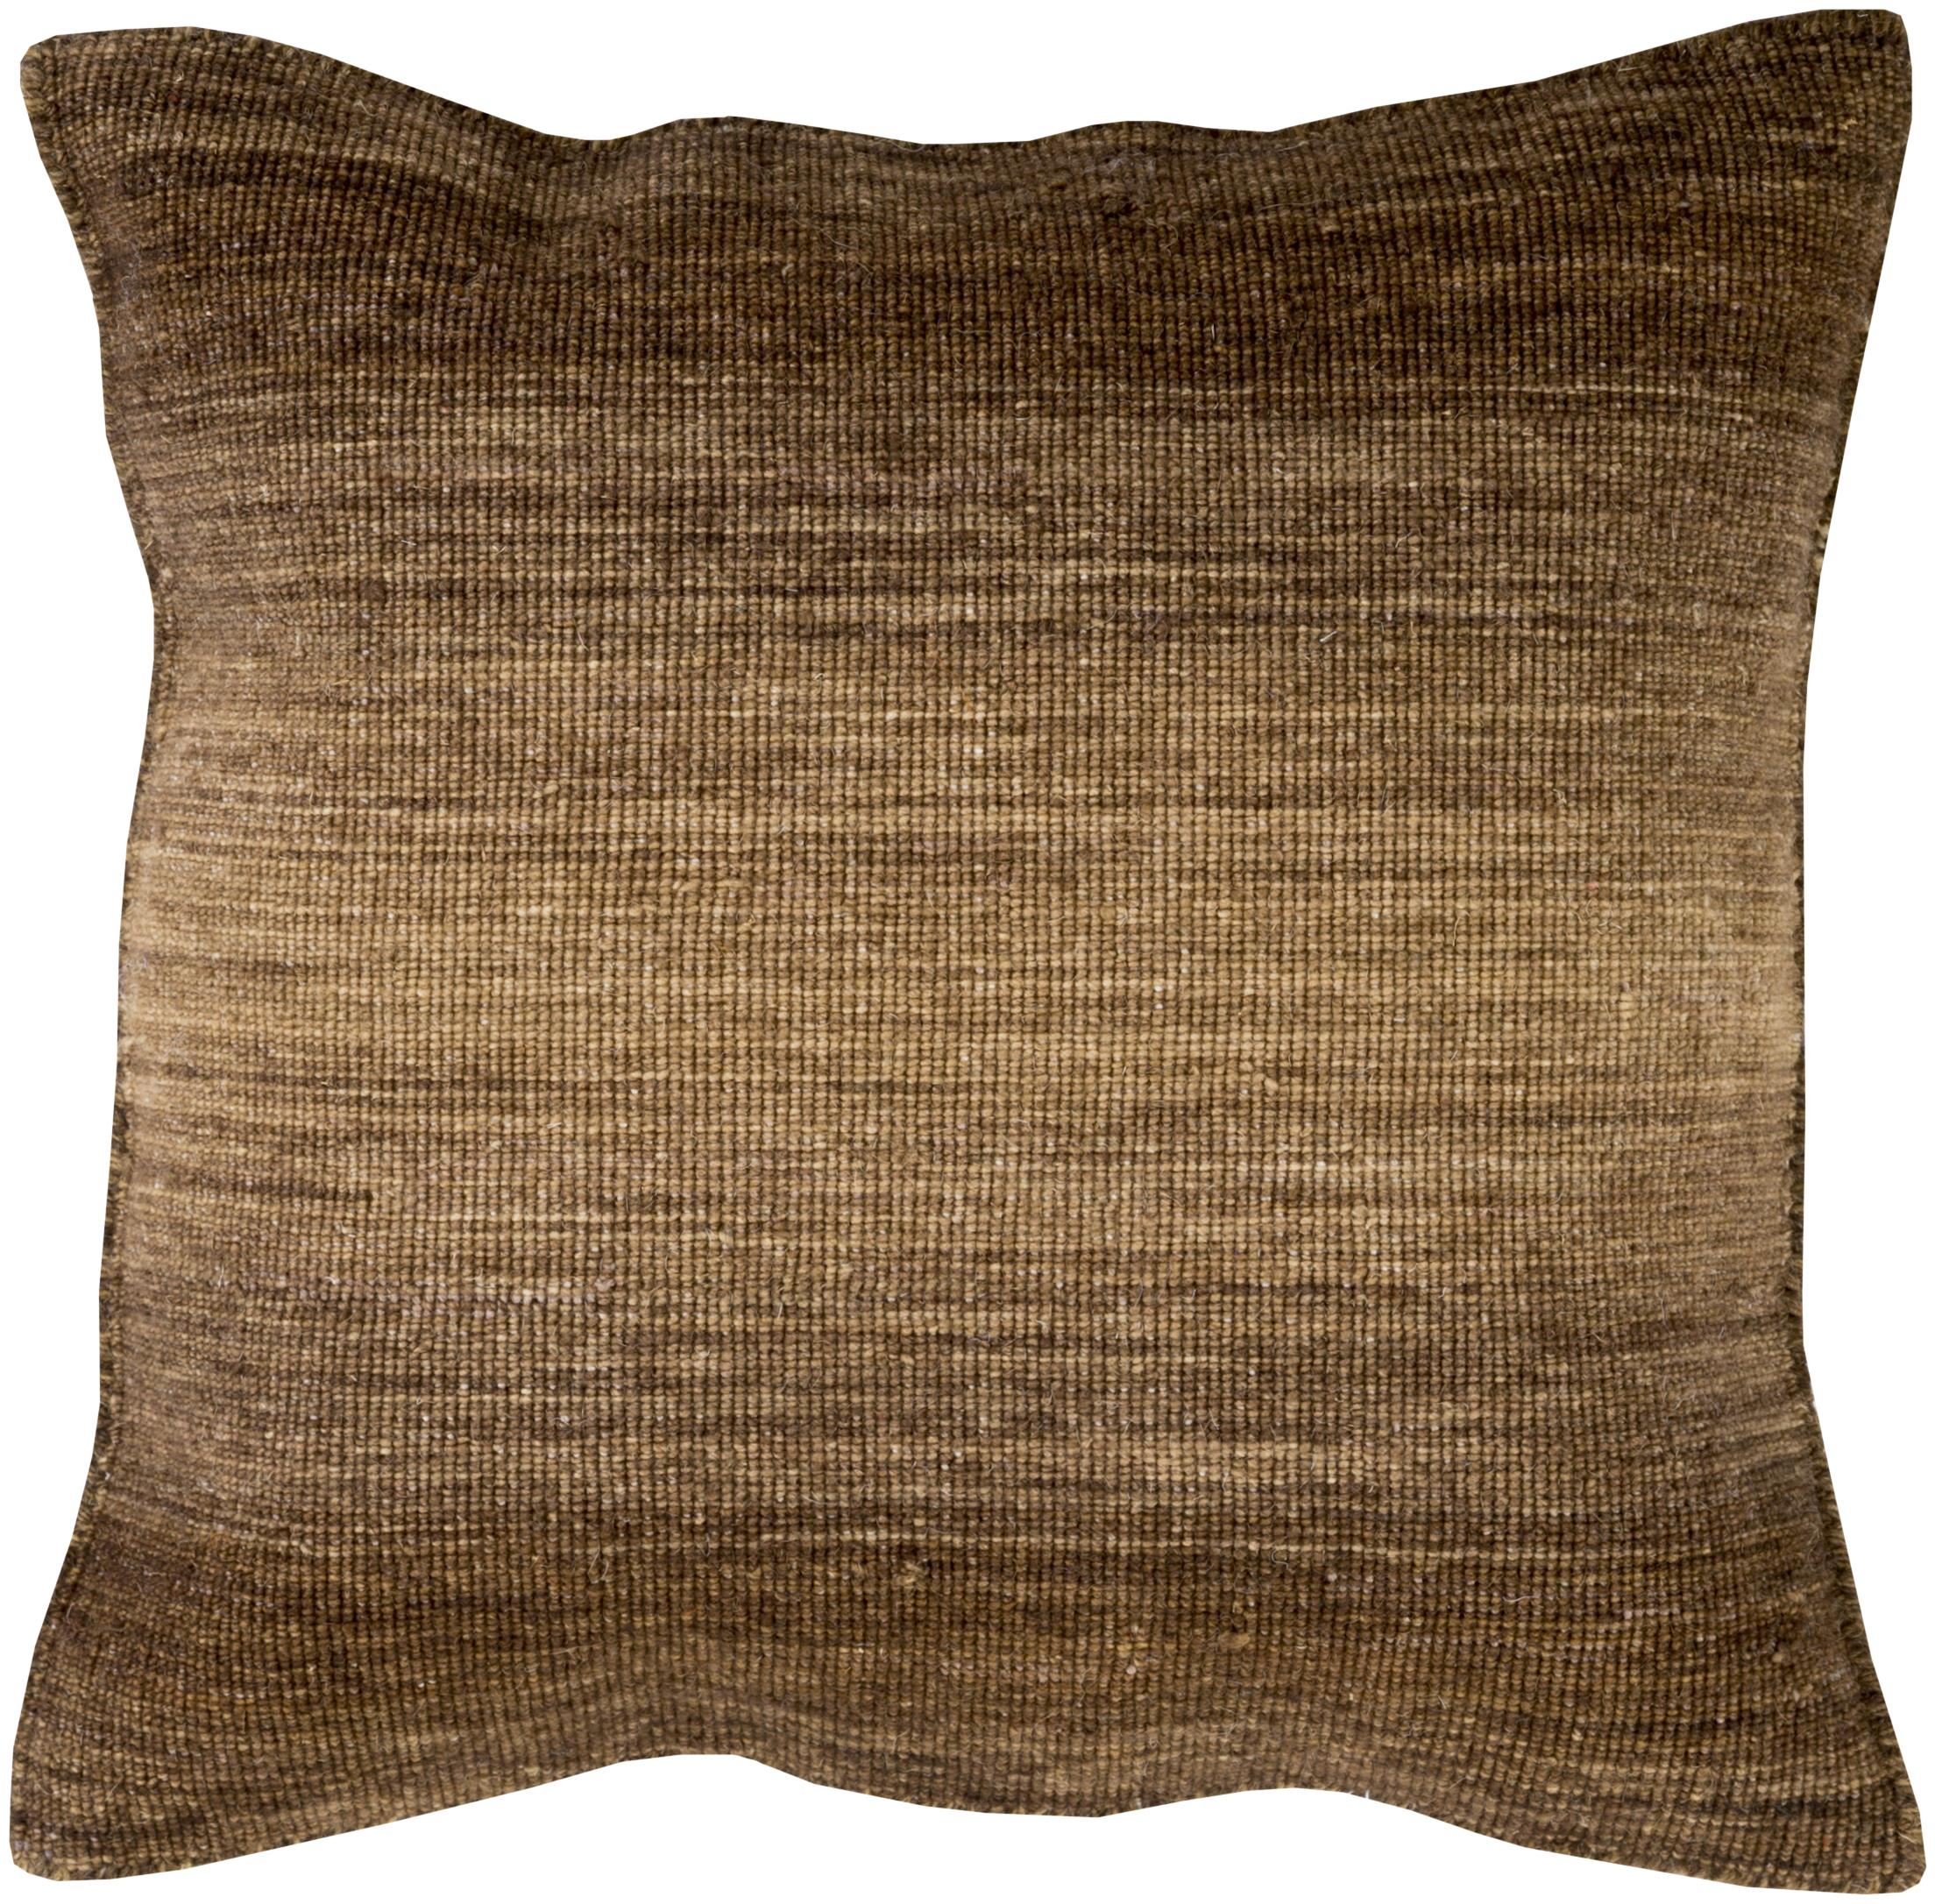 "Surya Pillows 18"" x 18"" Pillow - Item Number: CZ004-1818P"